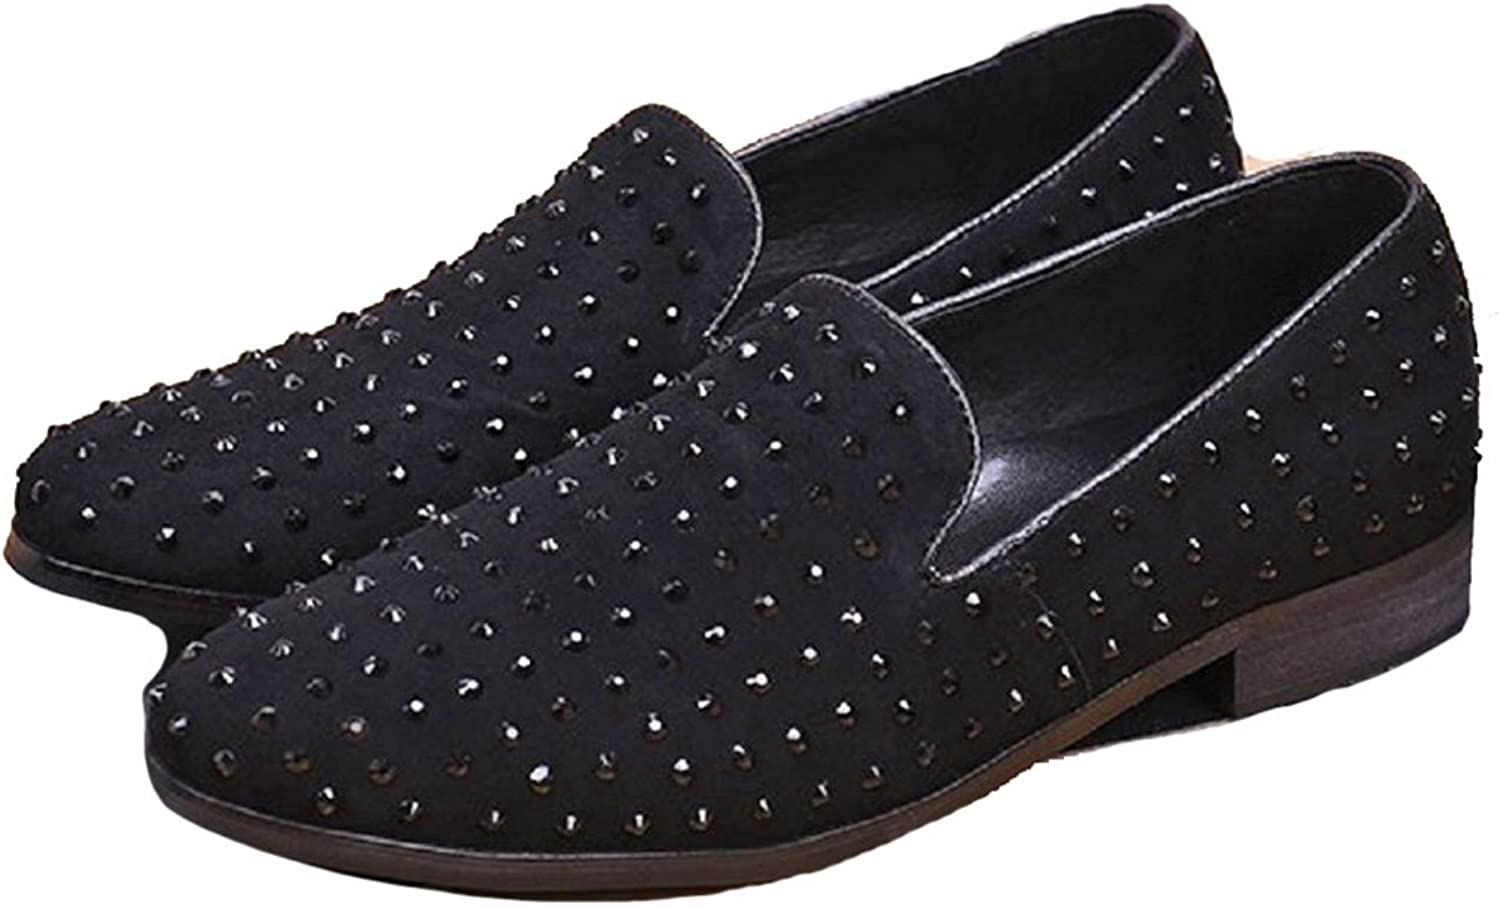 Cover Plus New Fashion Studded Rhinestone Leather Mens Slip On Casual Dress Suit Loafers shoes